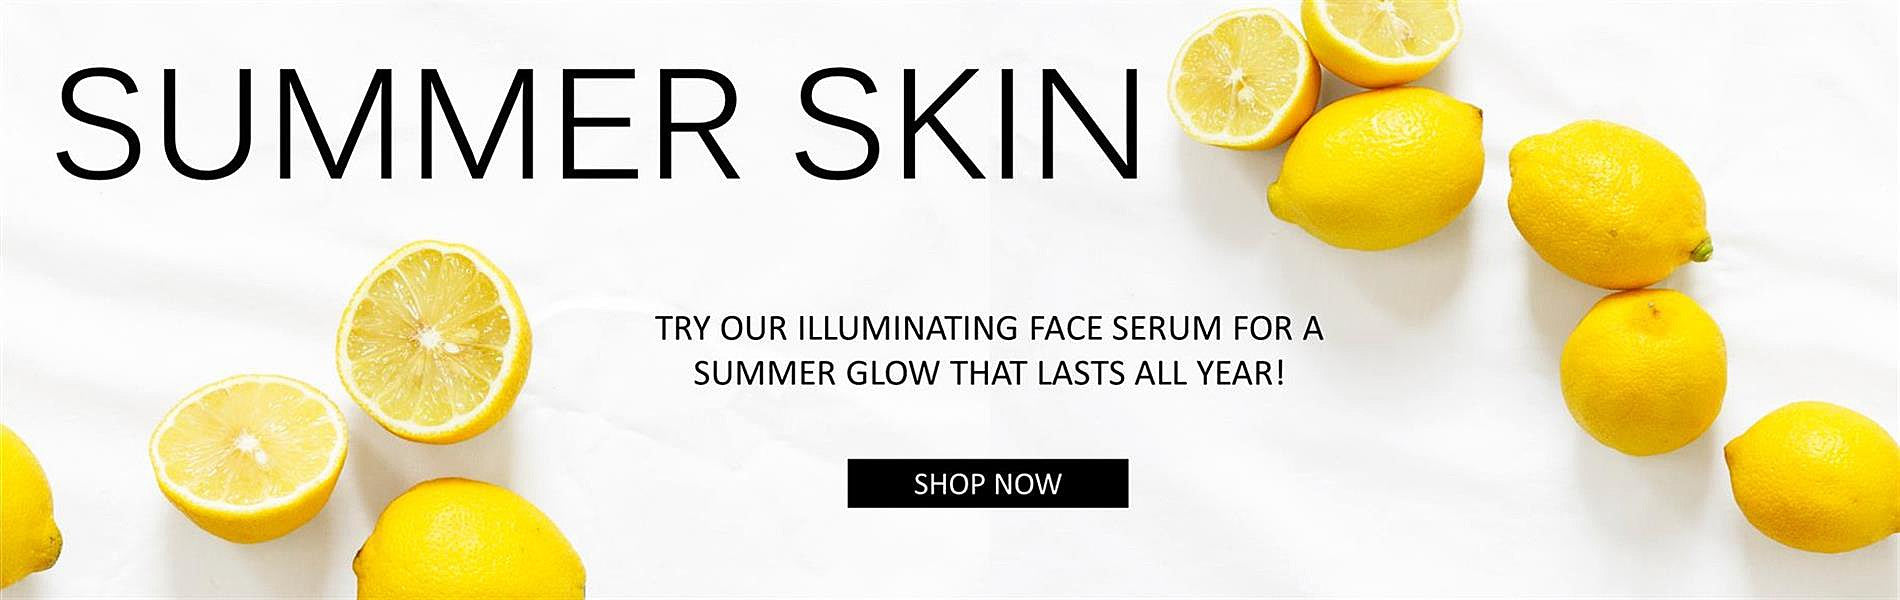 Illuminating Face Serum